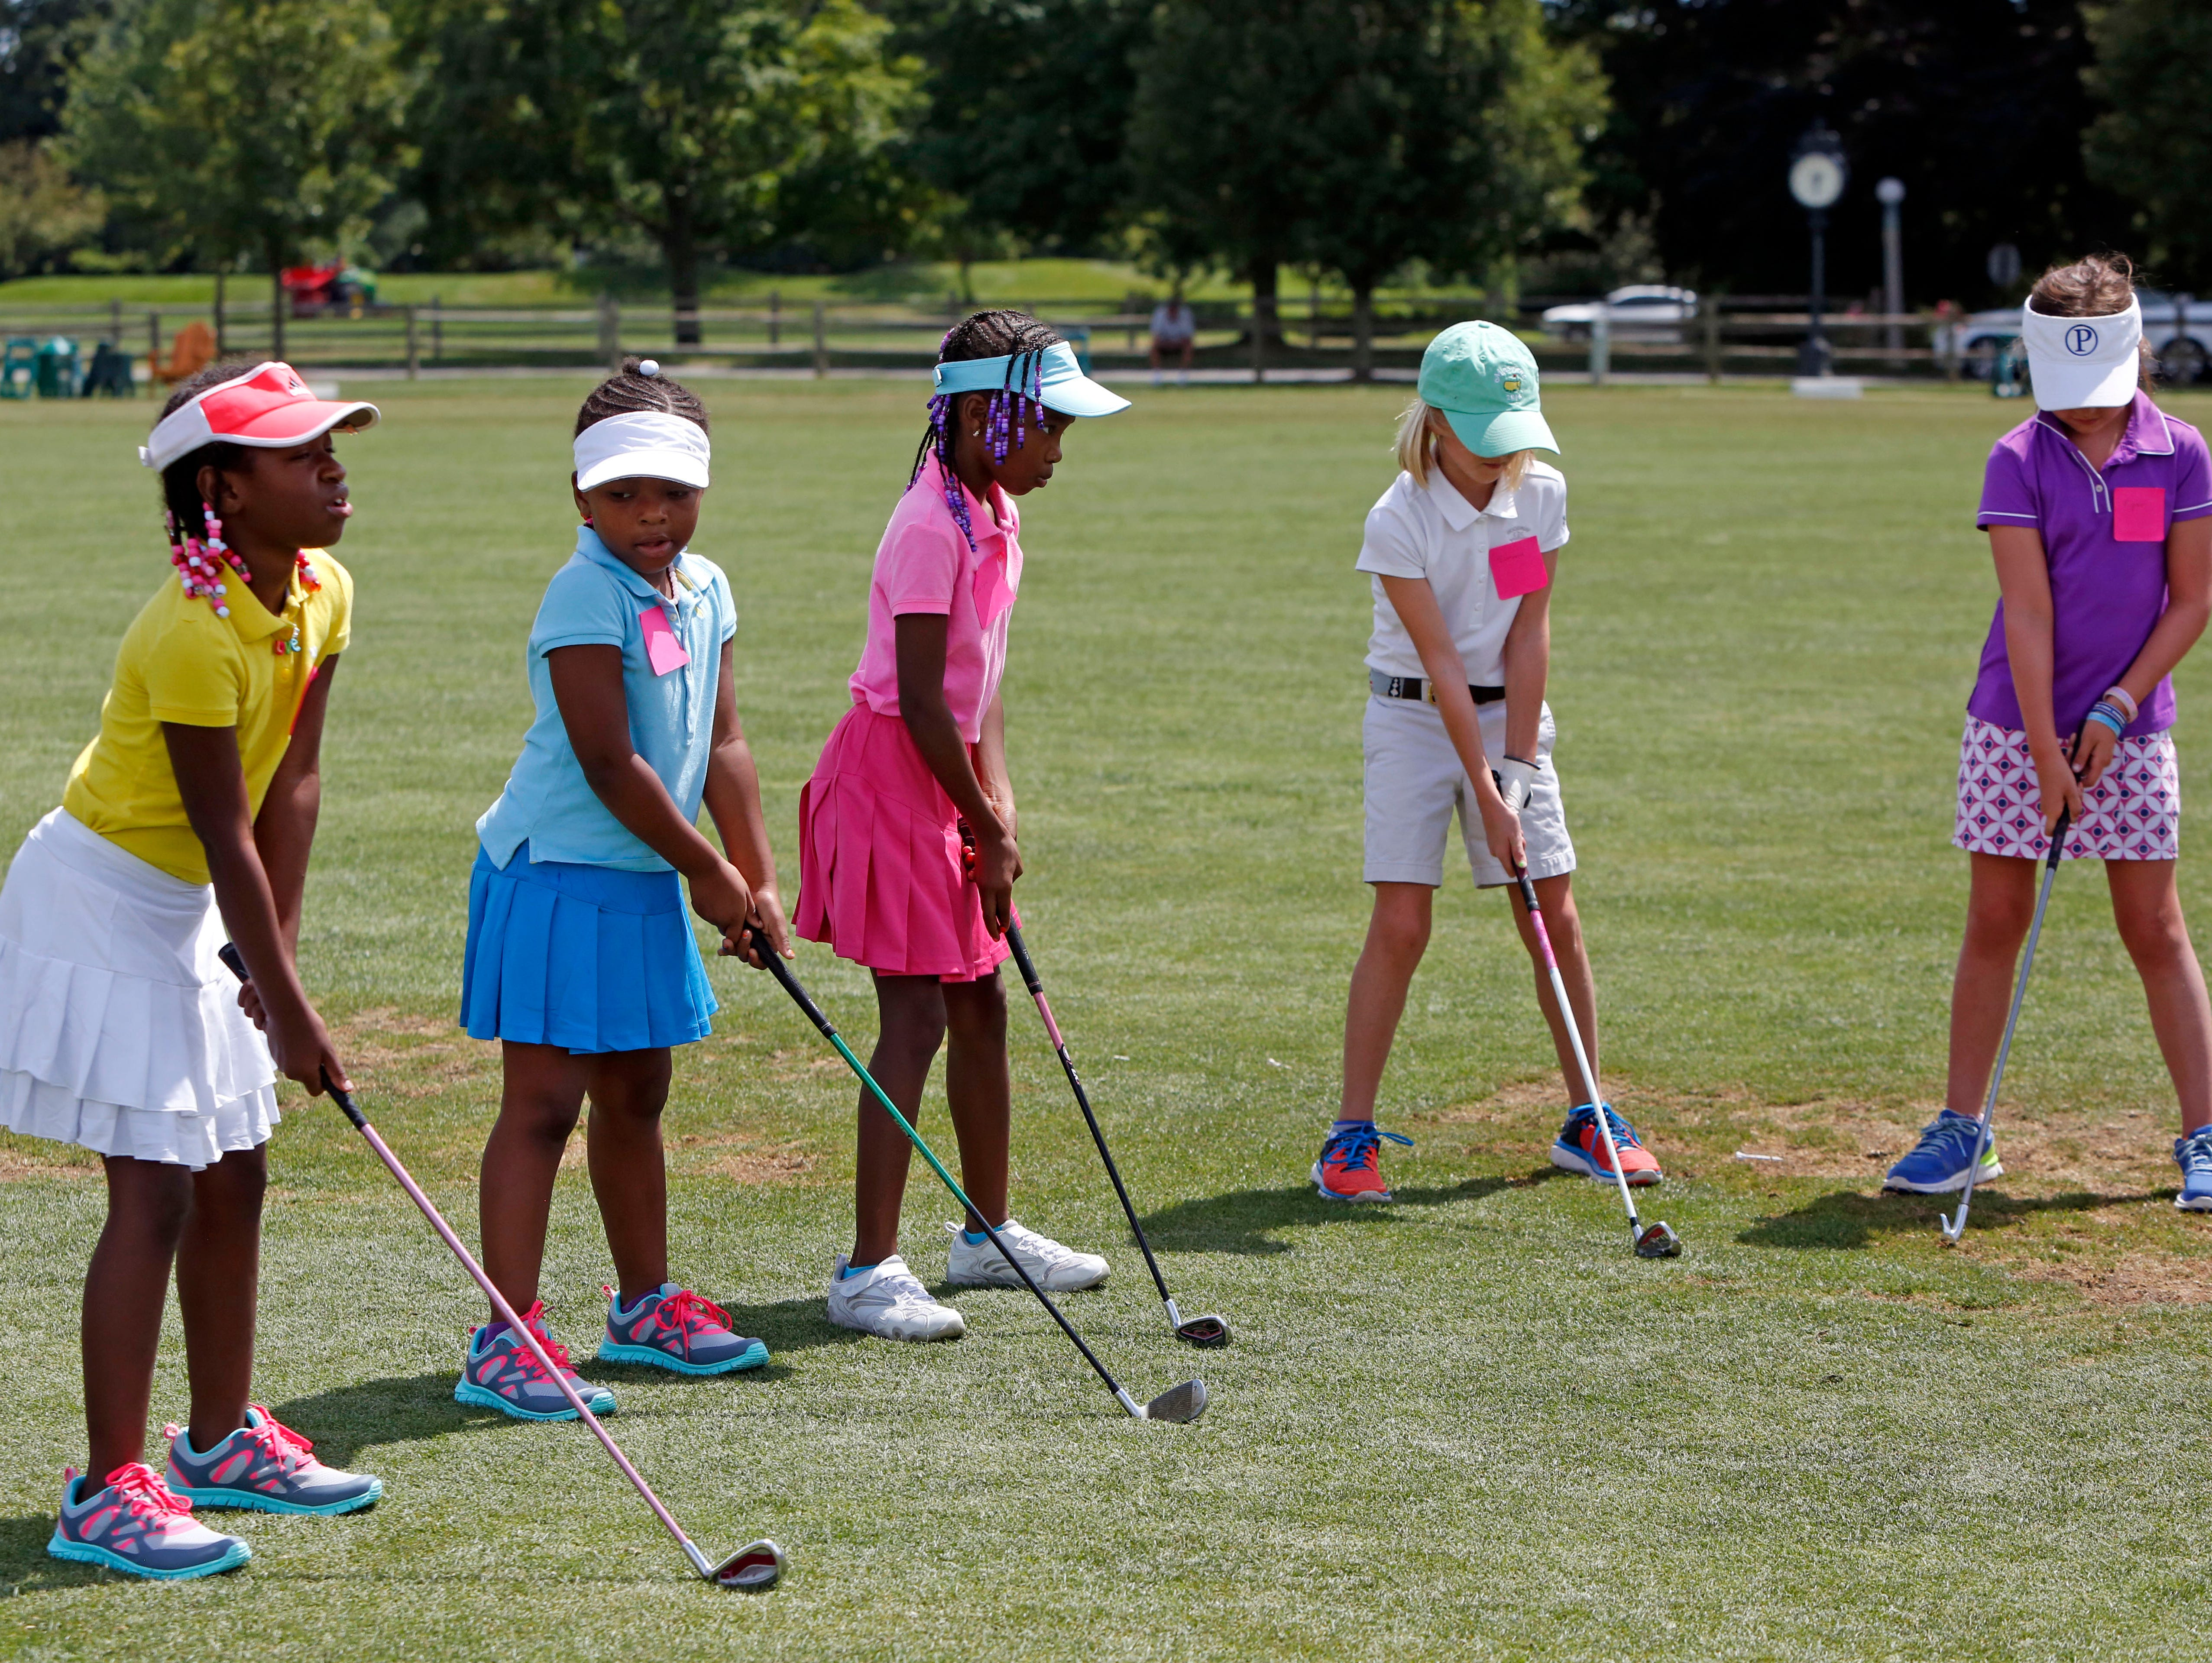 Girls practice their stance during the Women's Metropolitan Golf Association's annual Girls to the Tee event at Westchester Country Club in Rye, Aug. 8, 2016. The free clinic, for girls ages 6-18, is an afternoon of instruction and networking to help show girls who are learning the game that they are part of a larger group.